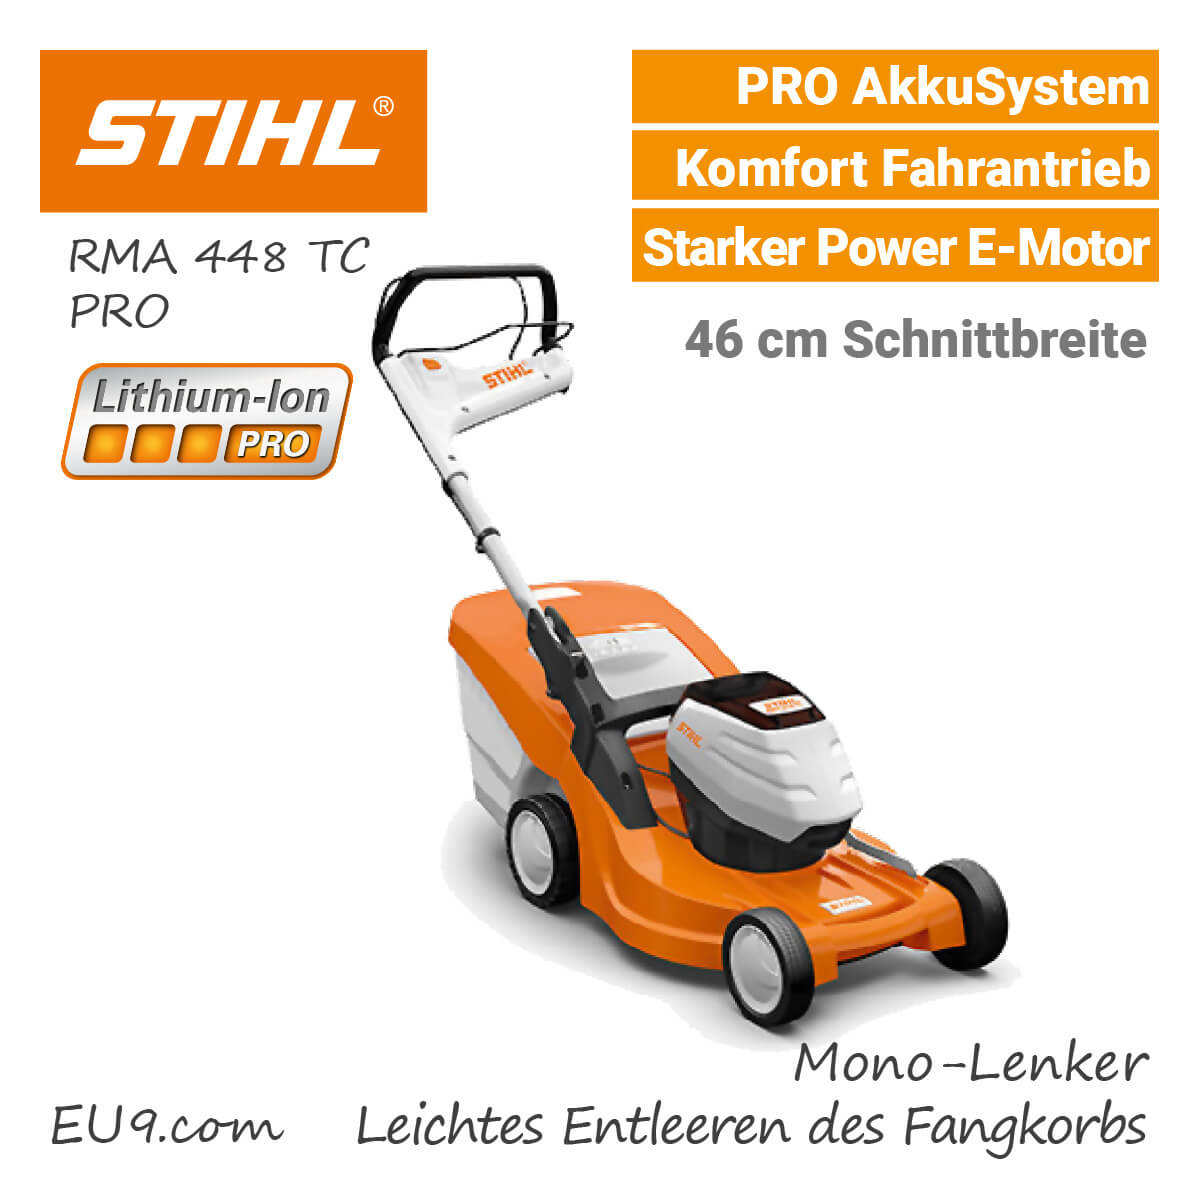 neu 2018 stihl rma 448 tc akku rasenm her pro akkusystem. Black Bedroom Furniture Sets. Home Design Ideas